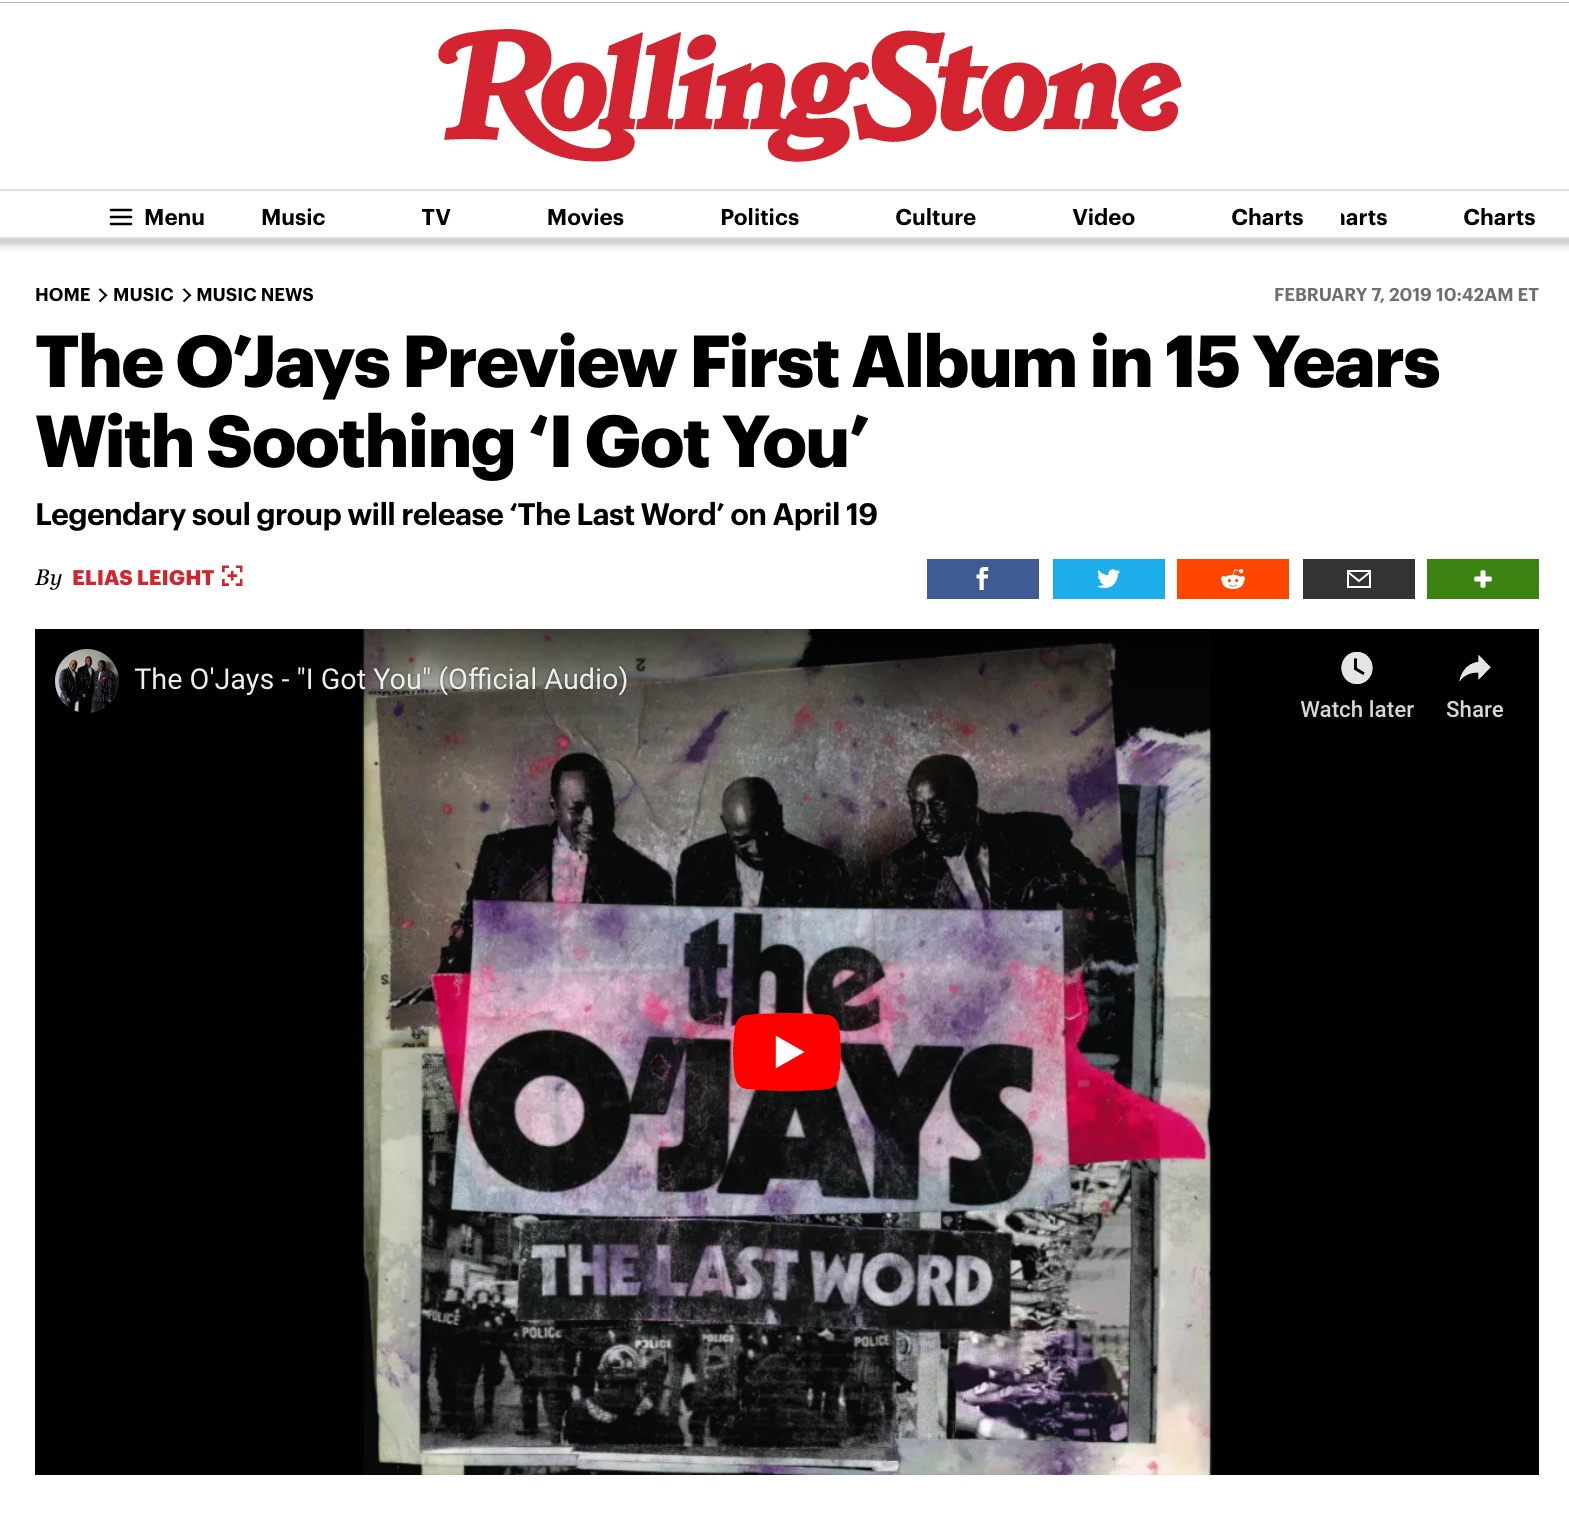 Rolling Stone Magazine announcing the album release.